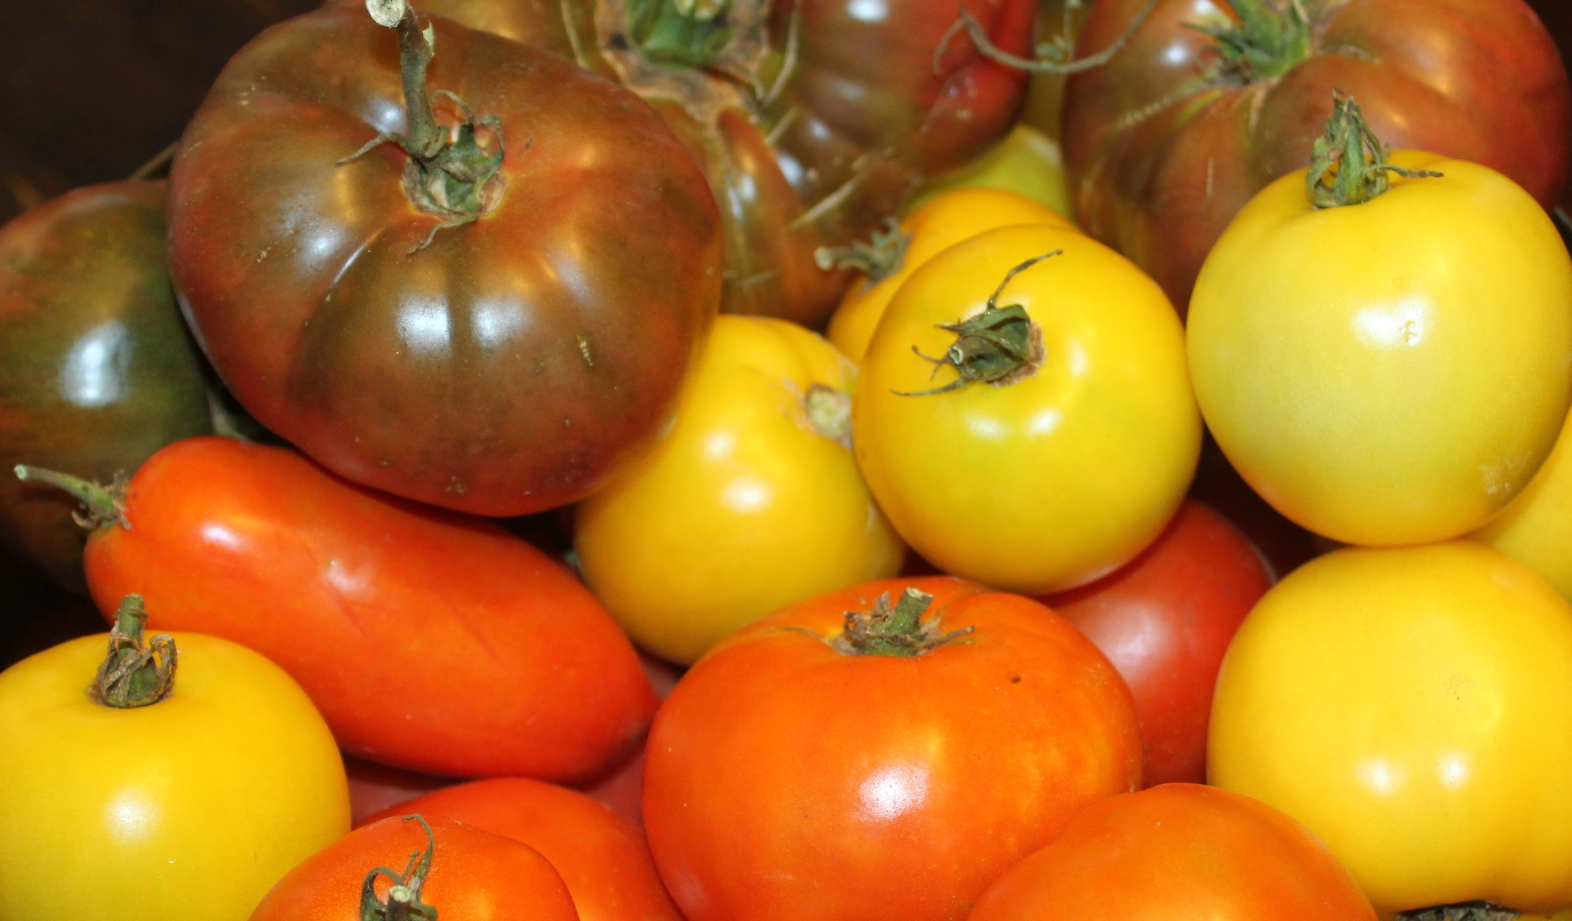 The Best Tomatoes To Grow For Eating, Cooking and Canning | Old World ...